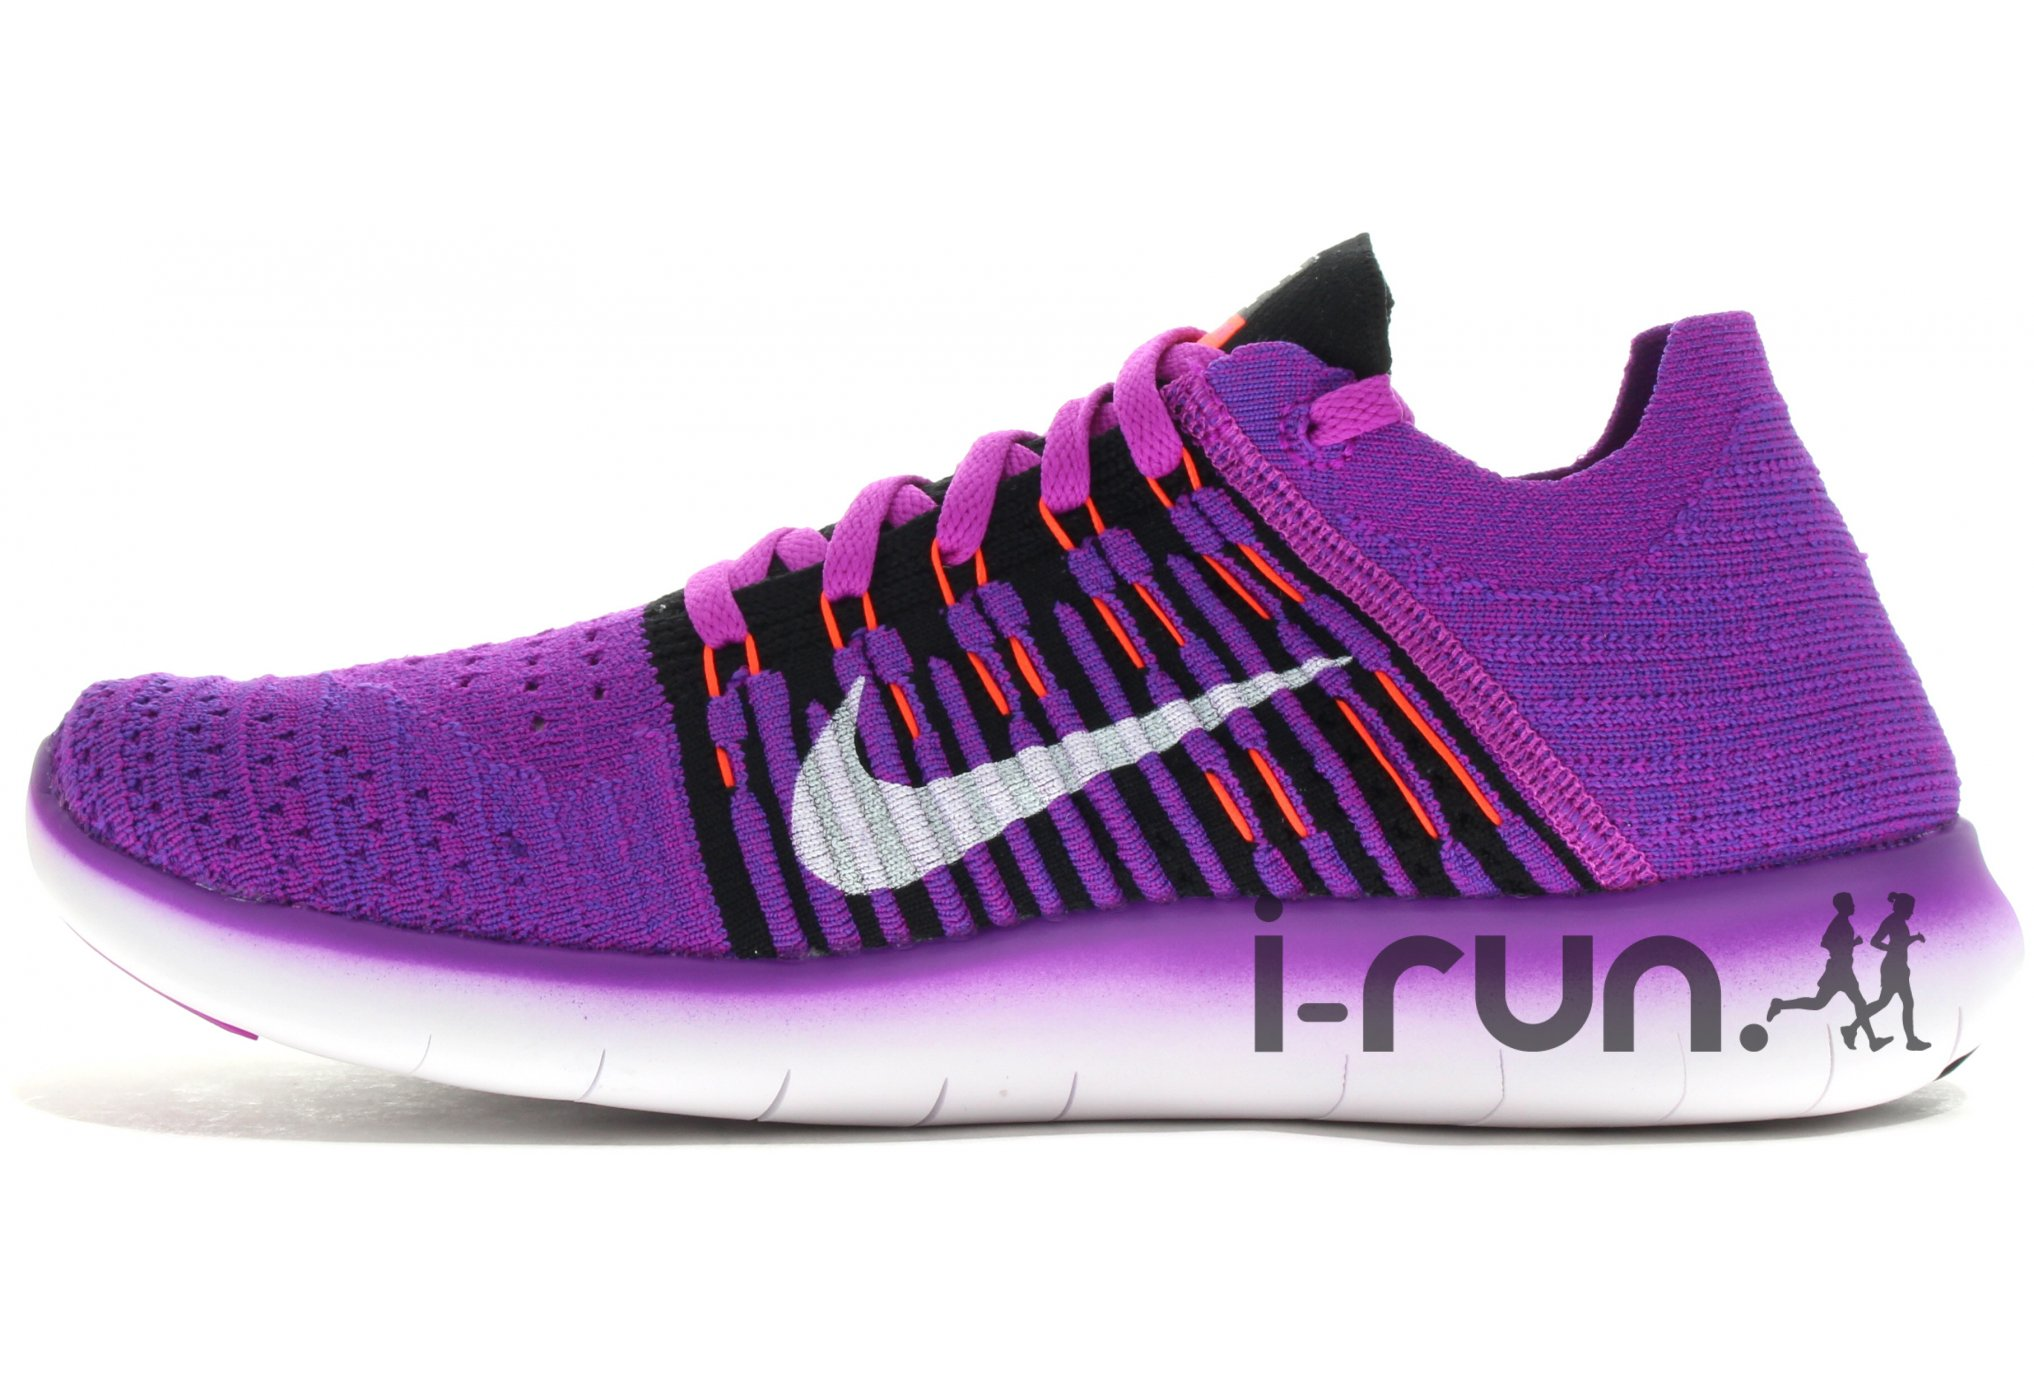 Chaussures Nike Free Flyknit aswPm